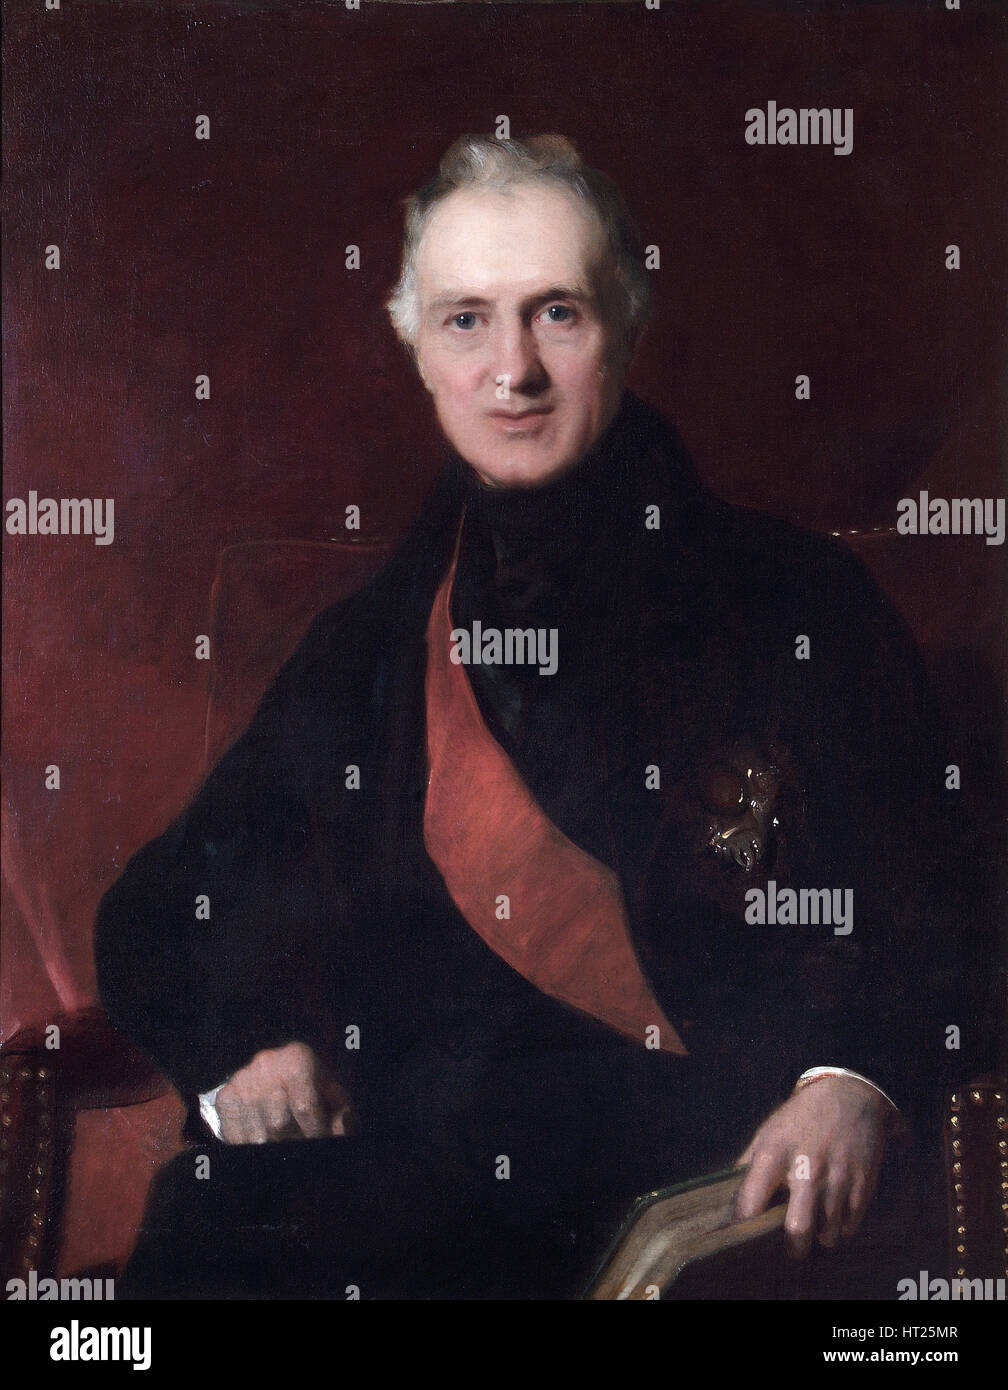 Portrait of General Sir George Murray, British soldier, c1840s. Artist: John Prescott Knight. - Stock Image